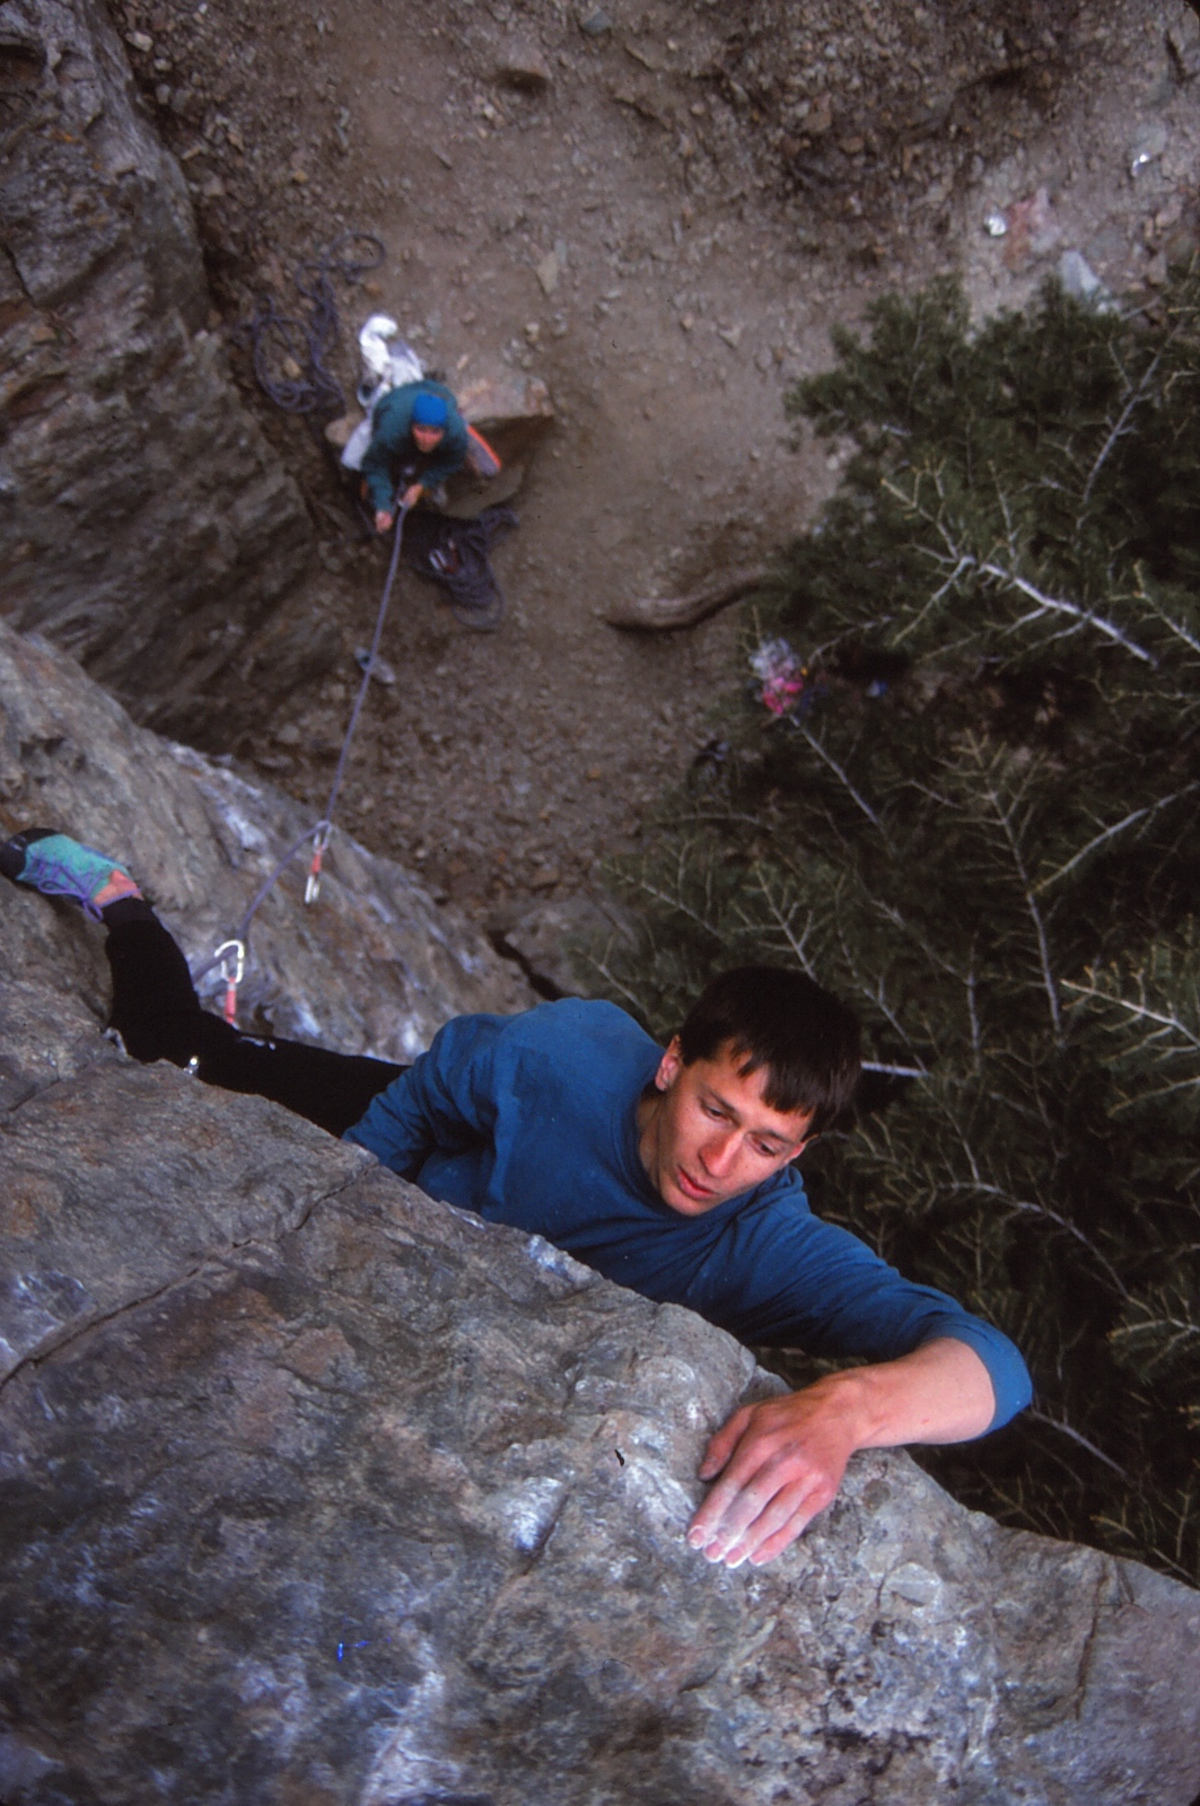 Dave Hayes on Big in Japan (5.12a) in Big Cottonwood Canyon, Utah, ca. late 1980s-early '90s. [Photo] Cameron M. Burns